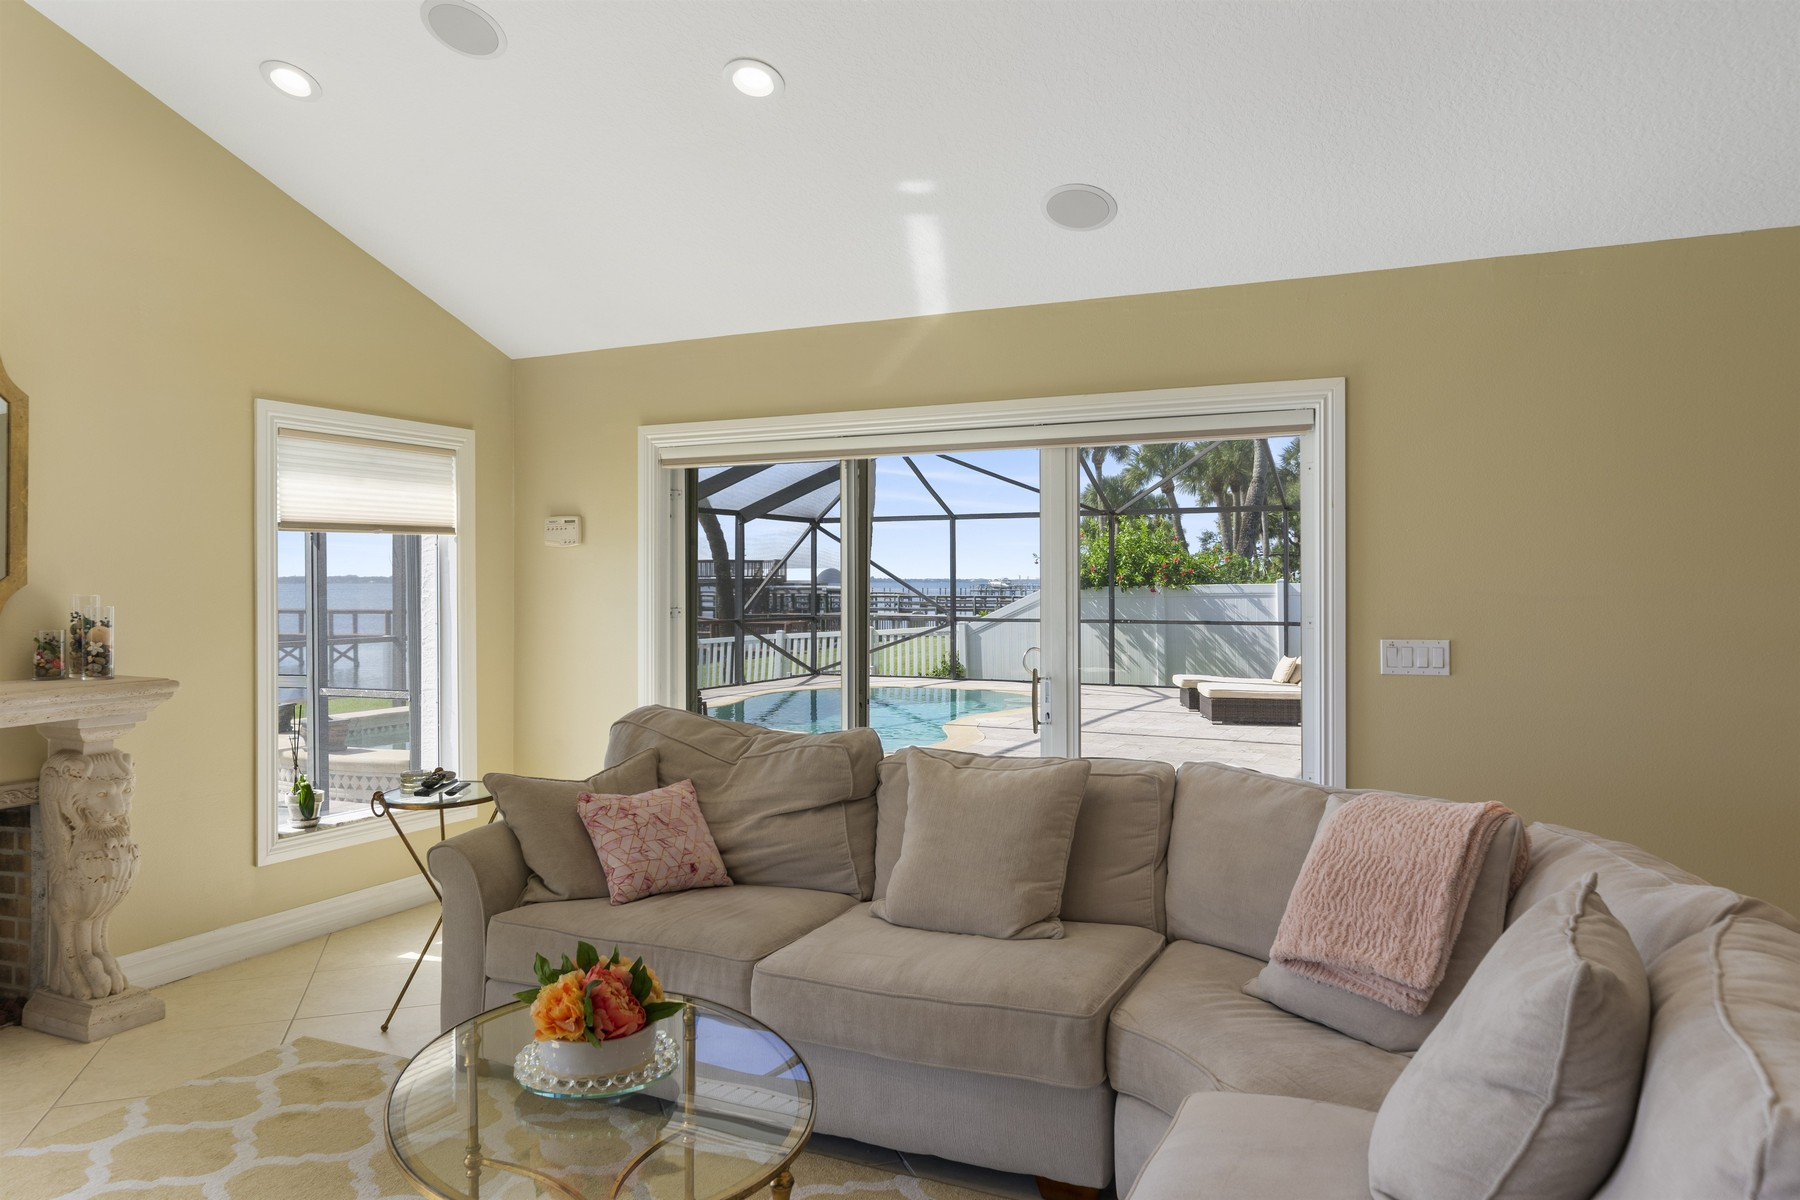 Additional photo for property listing at Wonderful Riverfront Pool Home in Quiet Neighborhood 235 Sea Crest Drive Melbourne Beach, 플로리다 32951 미국